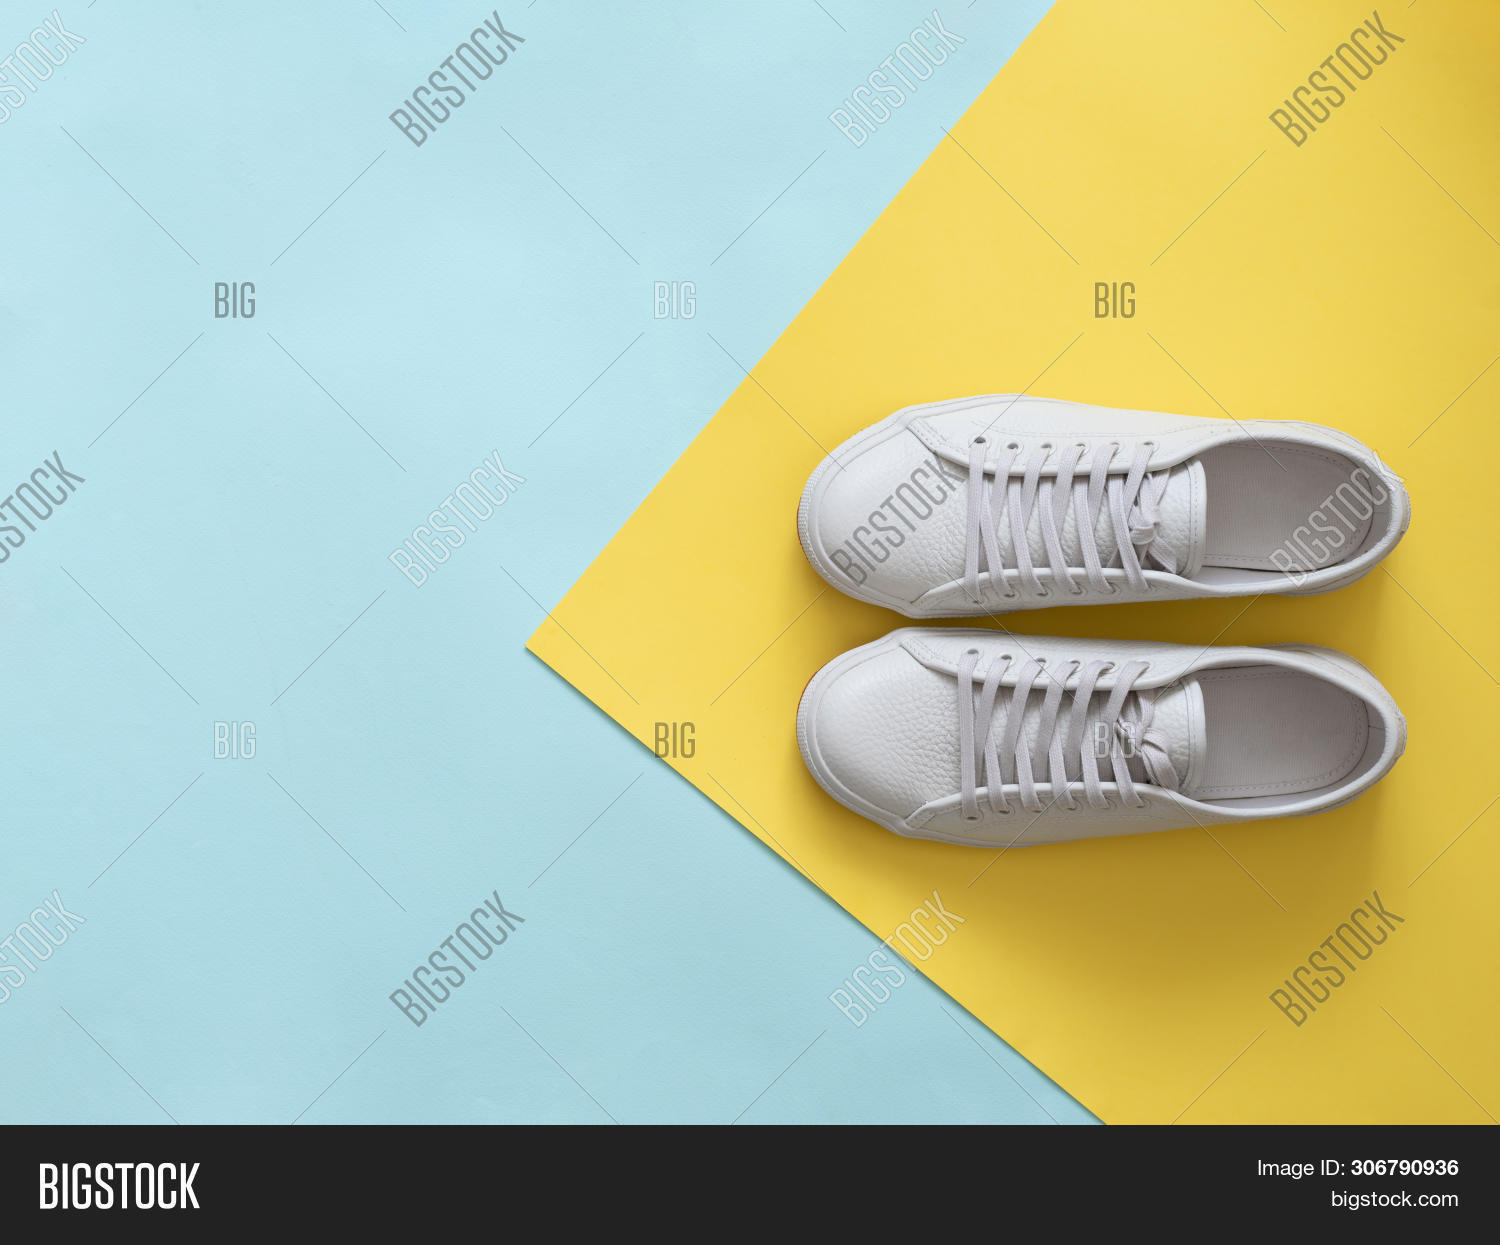 above,background,blue,casual,clothes,colorful,copy,design,fashion,female,flat,foot,footwear,laces,lay,leather,lifestyle,minimalistic,modern,multi-colored,new,nobody,overhead,pair,shoelace,shoes,sneakers,space,sport,style,text,top,trainers,trend,trendy,unisex,vacation,view,white,women,yellow